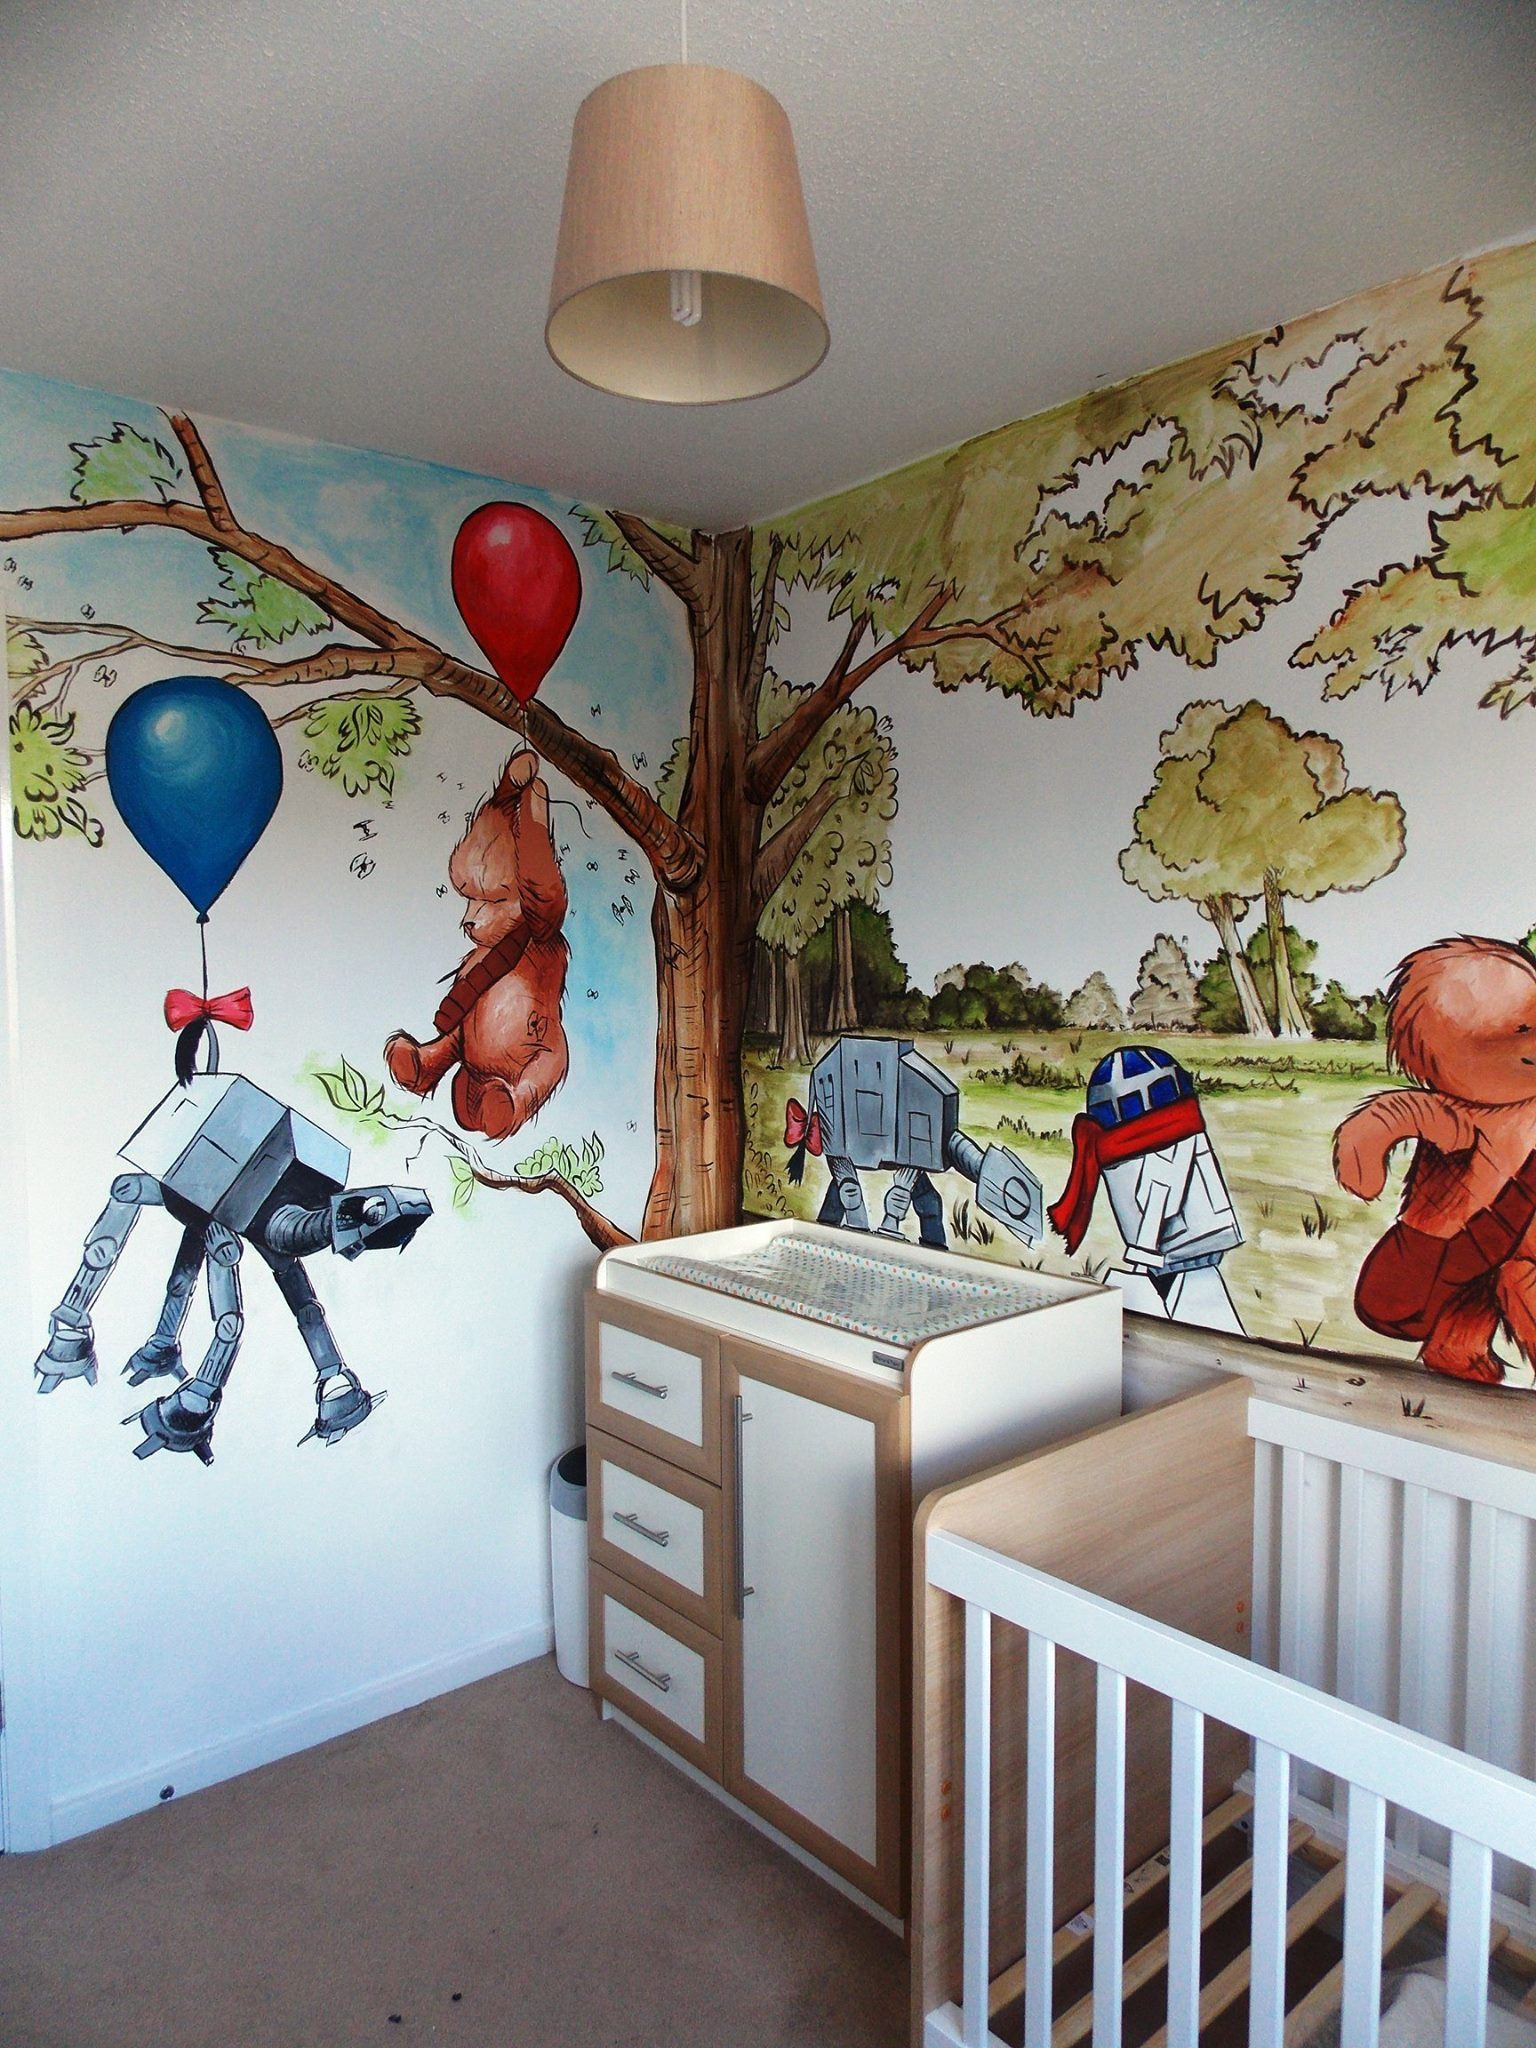 Star Wars Winnie The Pooh Mural Inspired By James Hance Star